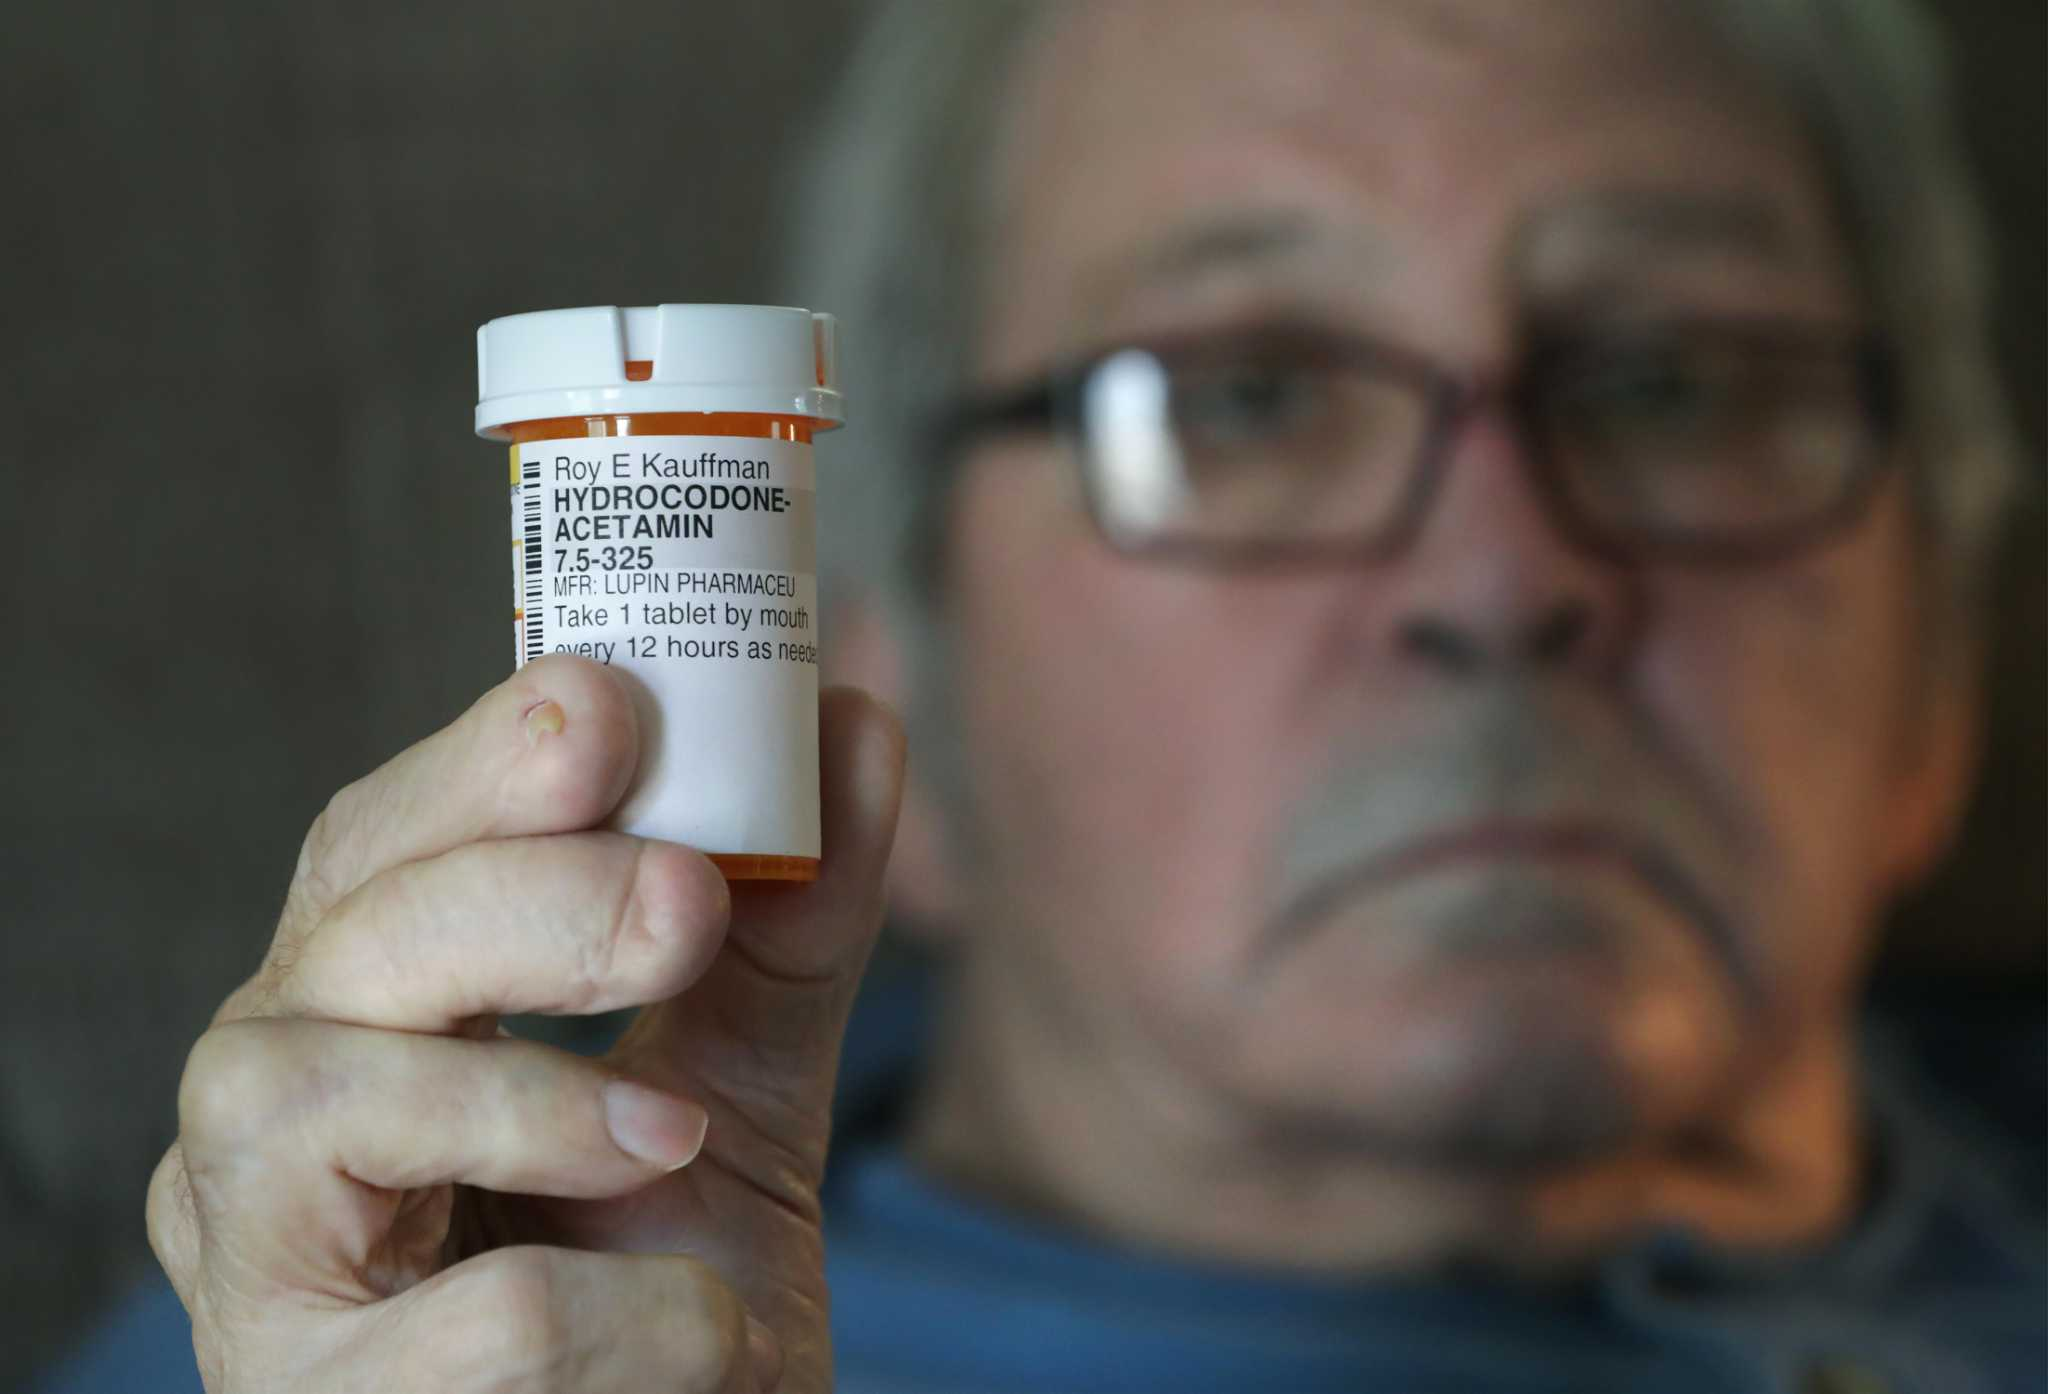 Narcotics prescriptions delayed as state transitions to new